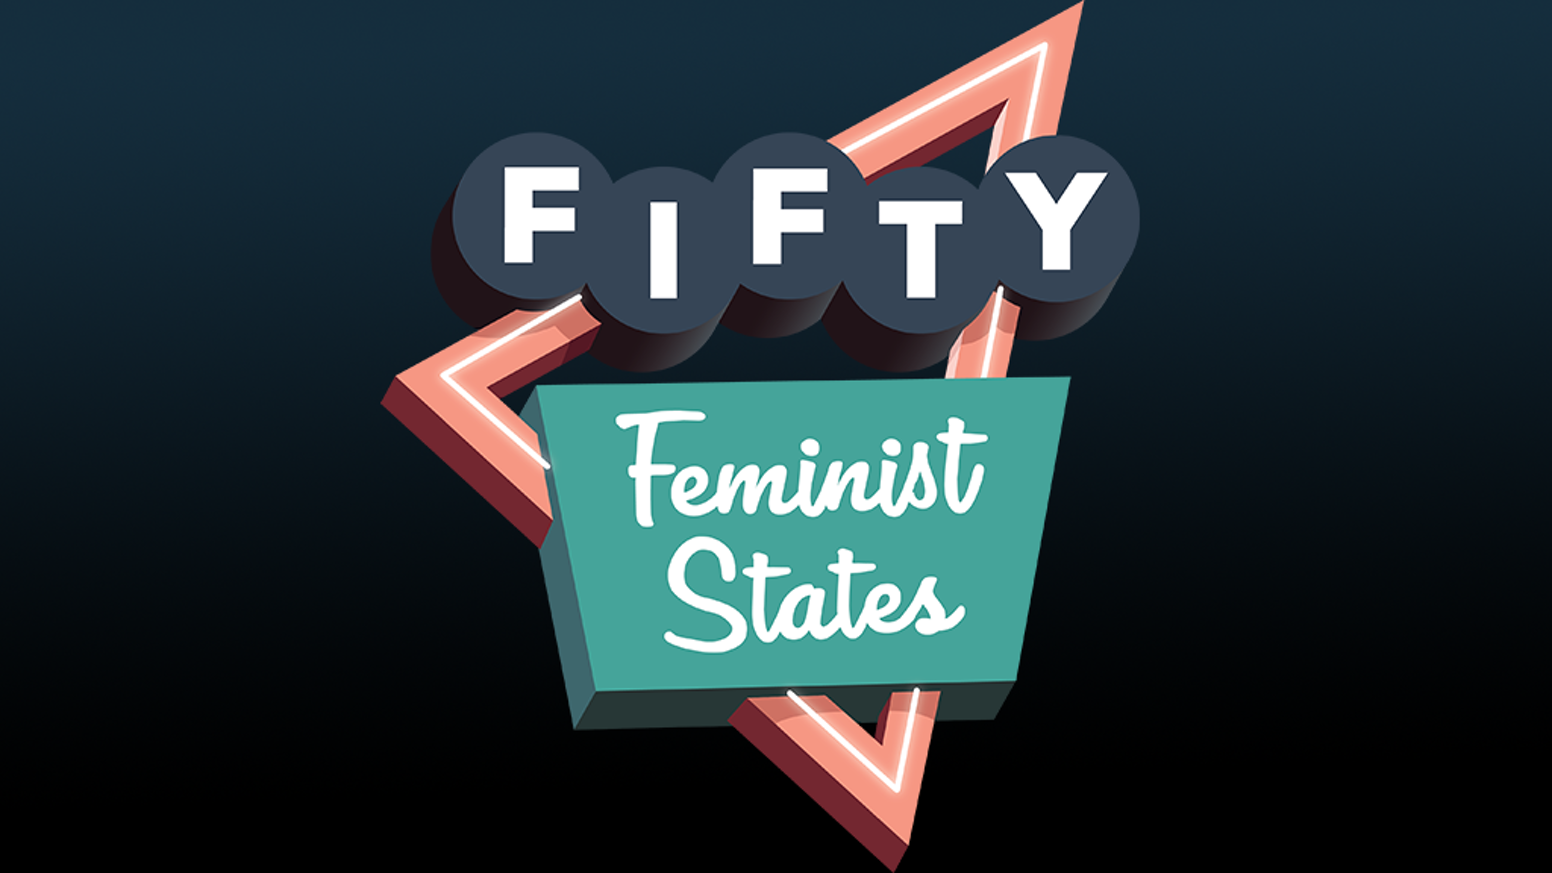 Fifty Feminist States is a multimedia storytelling project featuring feminist activists + artistsfrom all fifty US states.